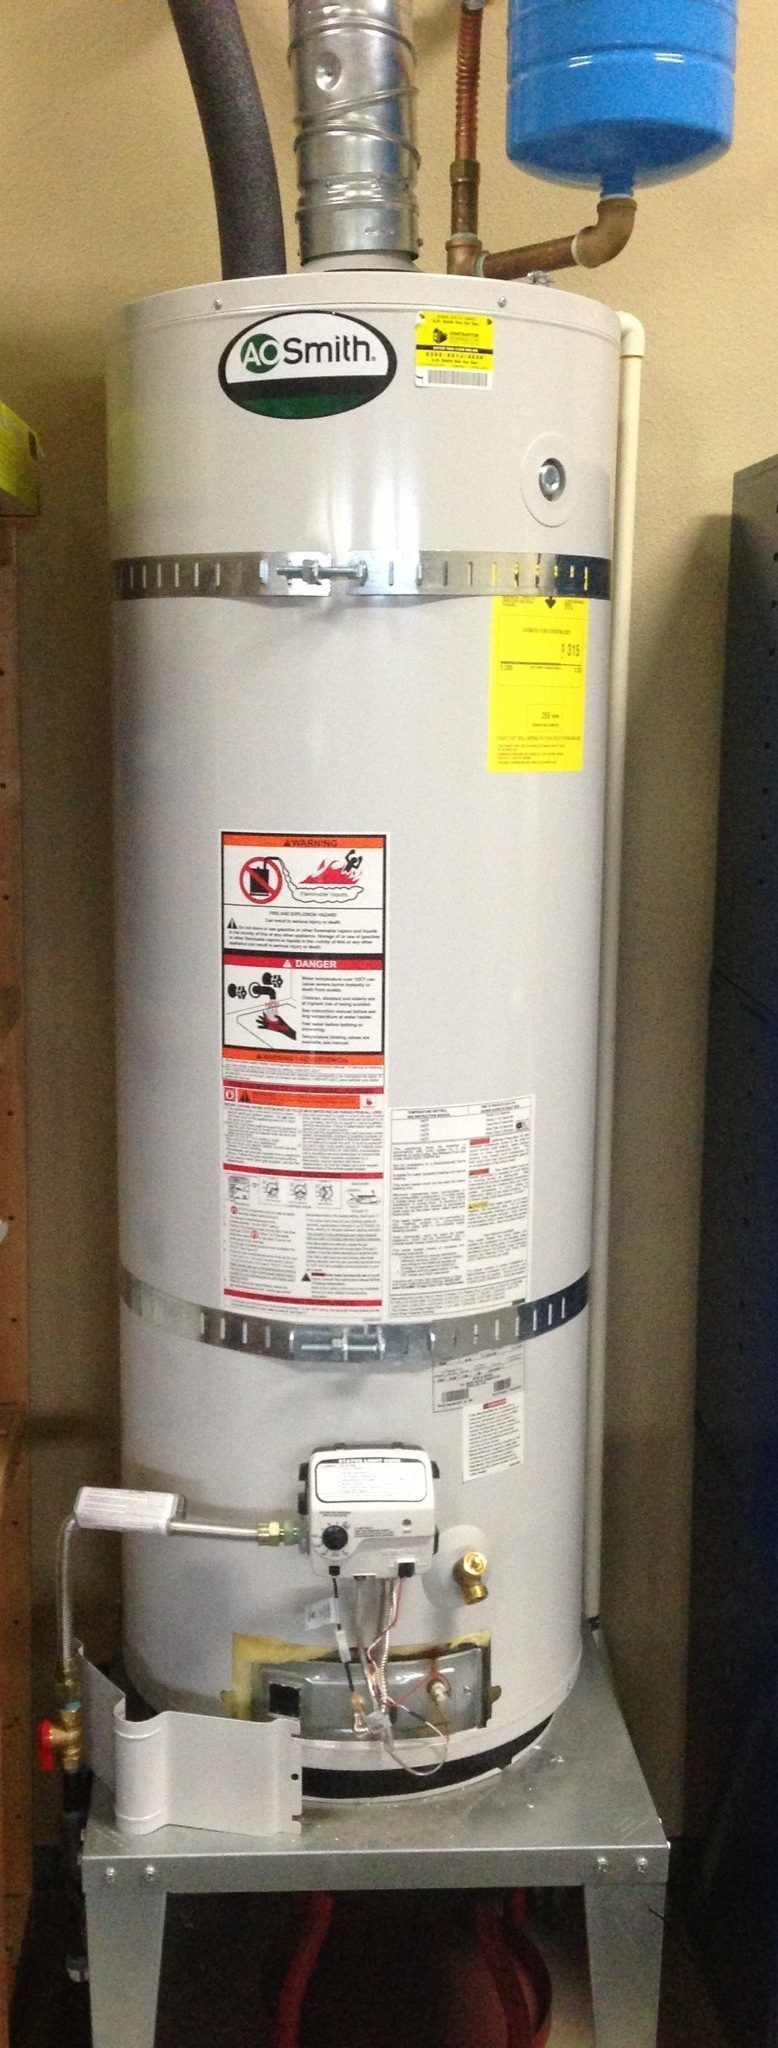 Dating ao smith water heater